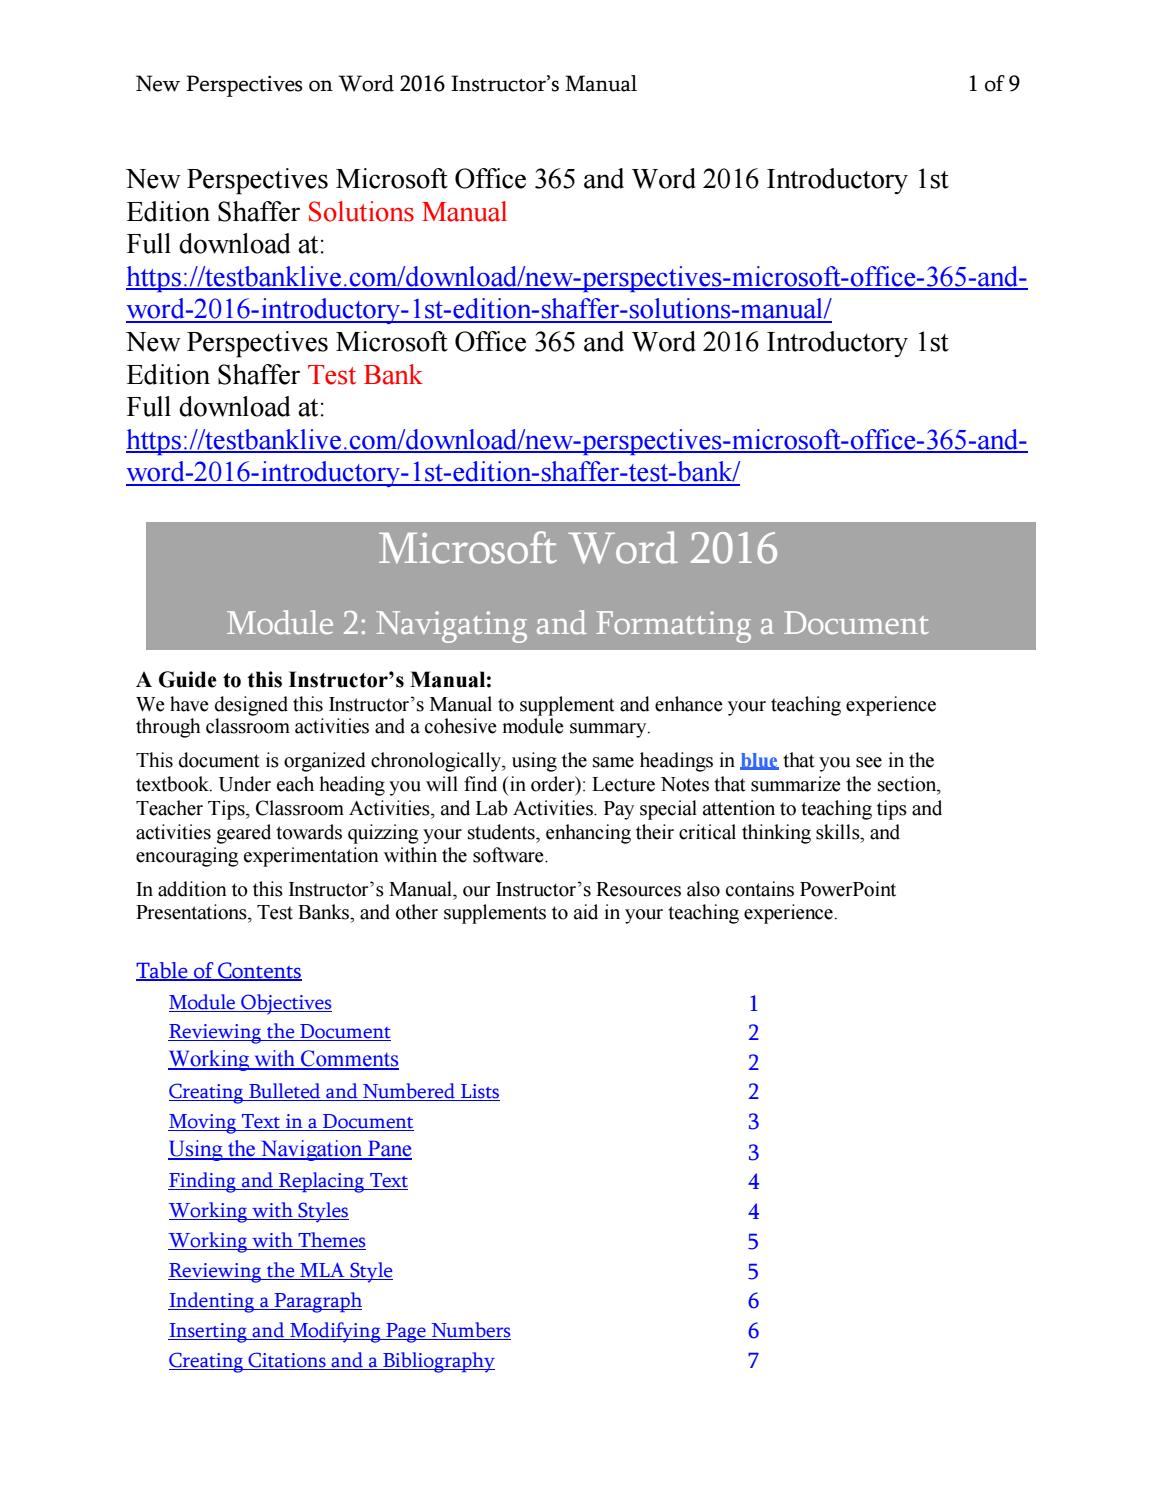 new perspectives microsoft office 365 and word 2016 introductory 1st edition shaffer solutions manua by luin192 issuu